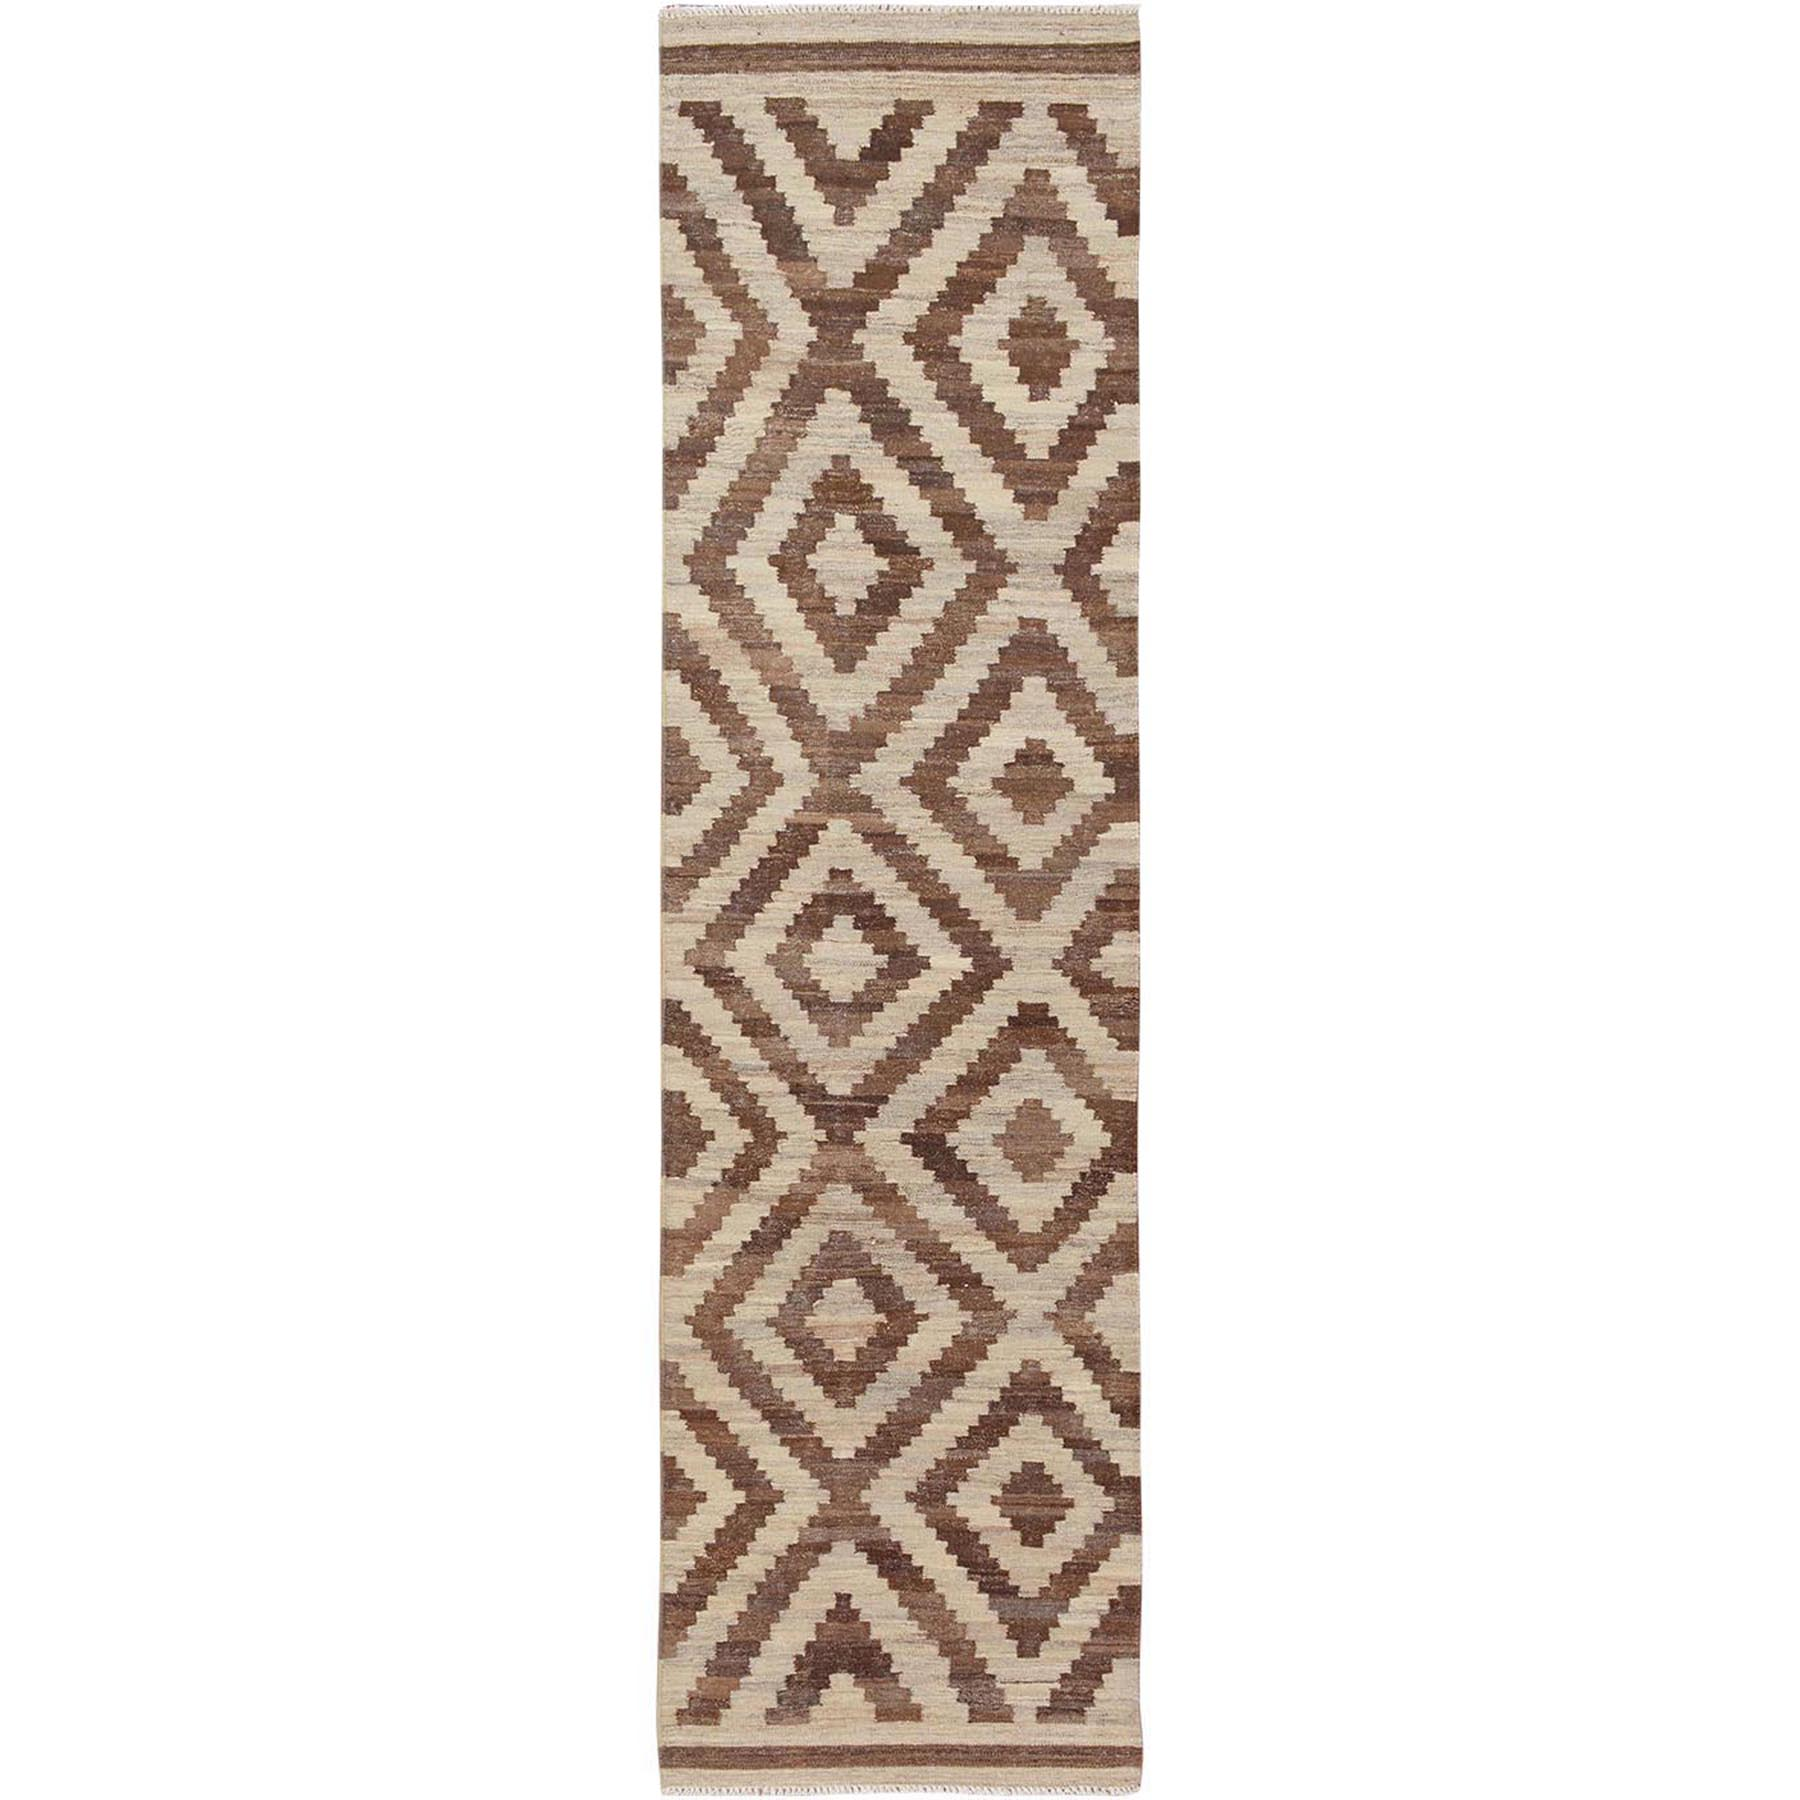 "2'7""x9'7"" Reversible Afghan Kilim Natural Dyes Pure Wool Runner Hand Woven Oriental Rug"